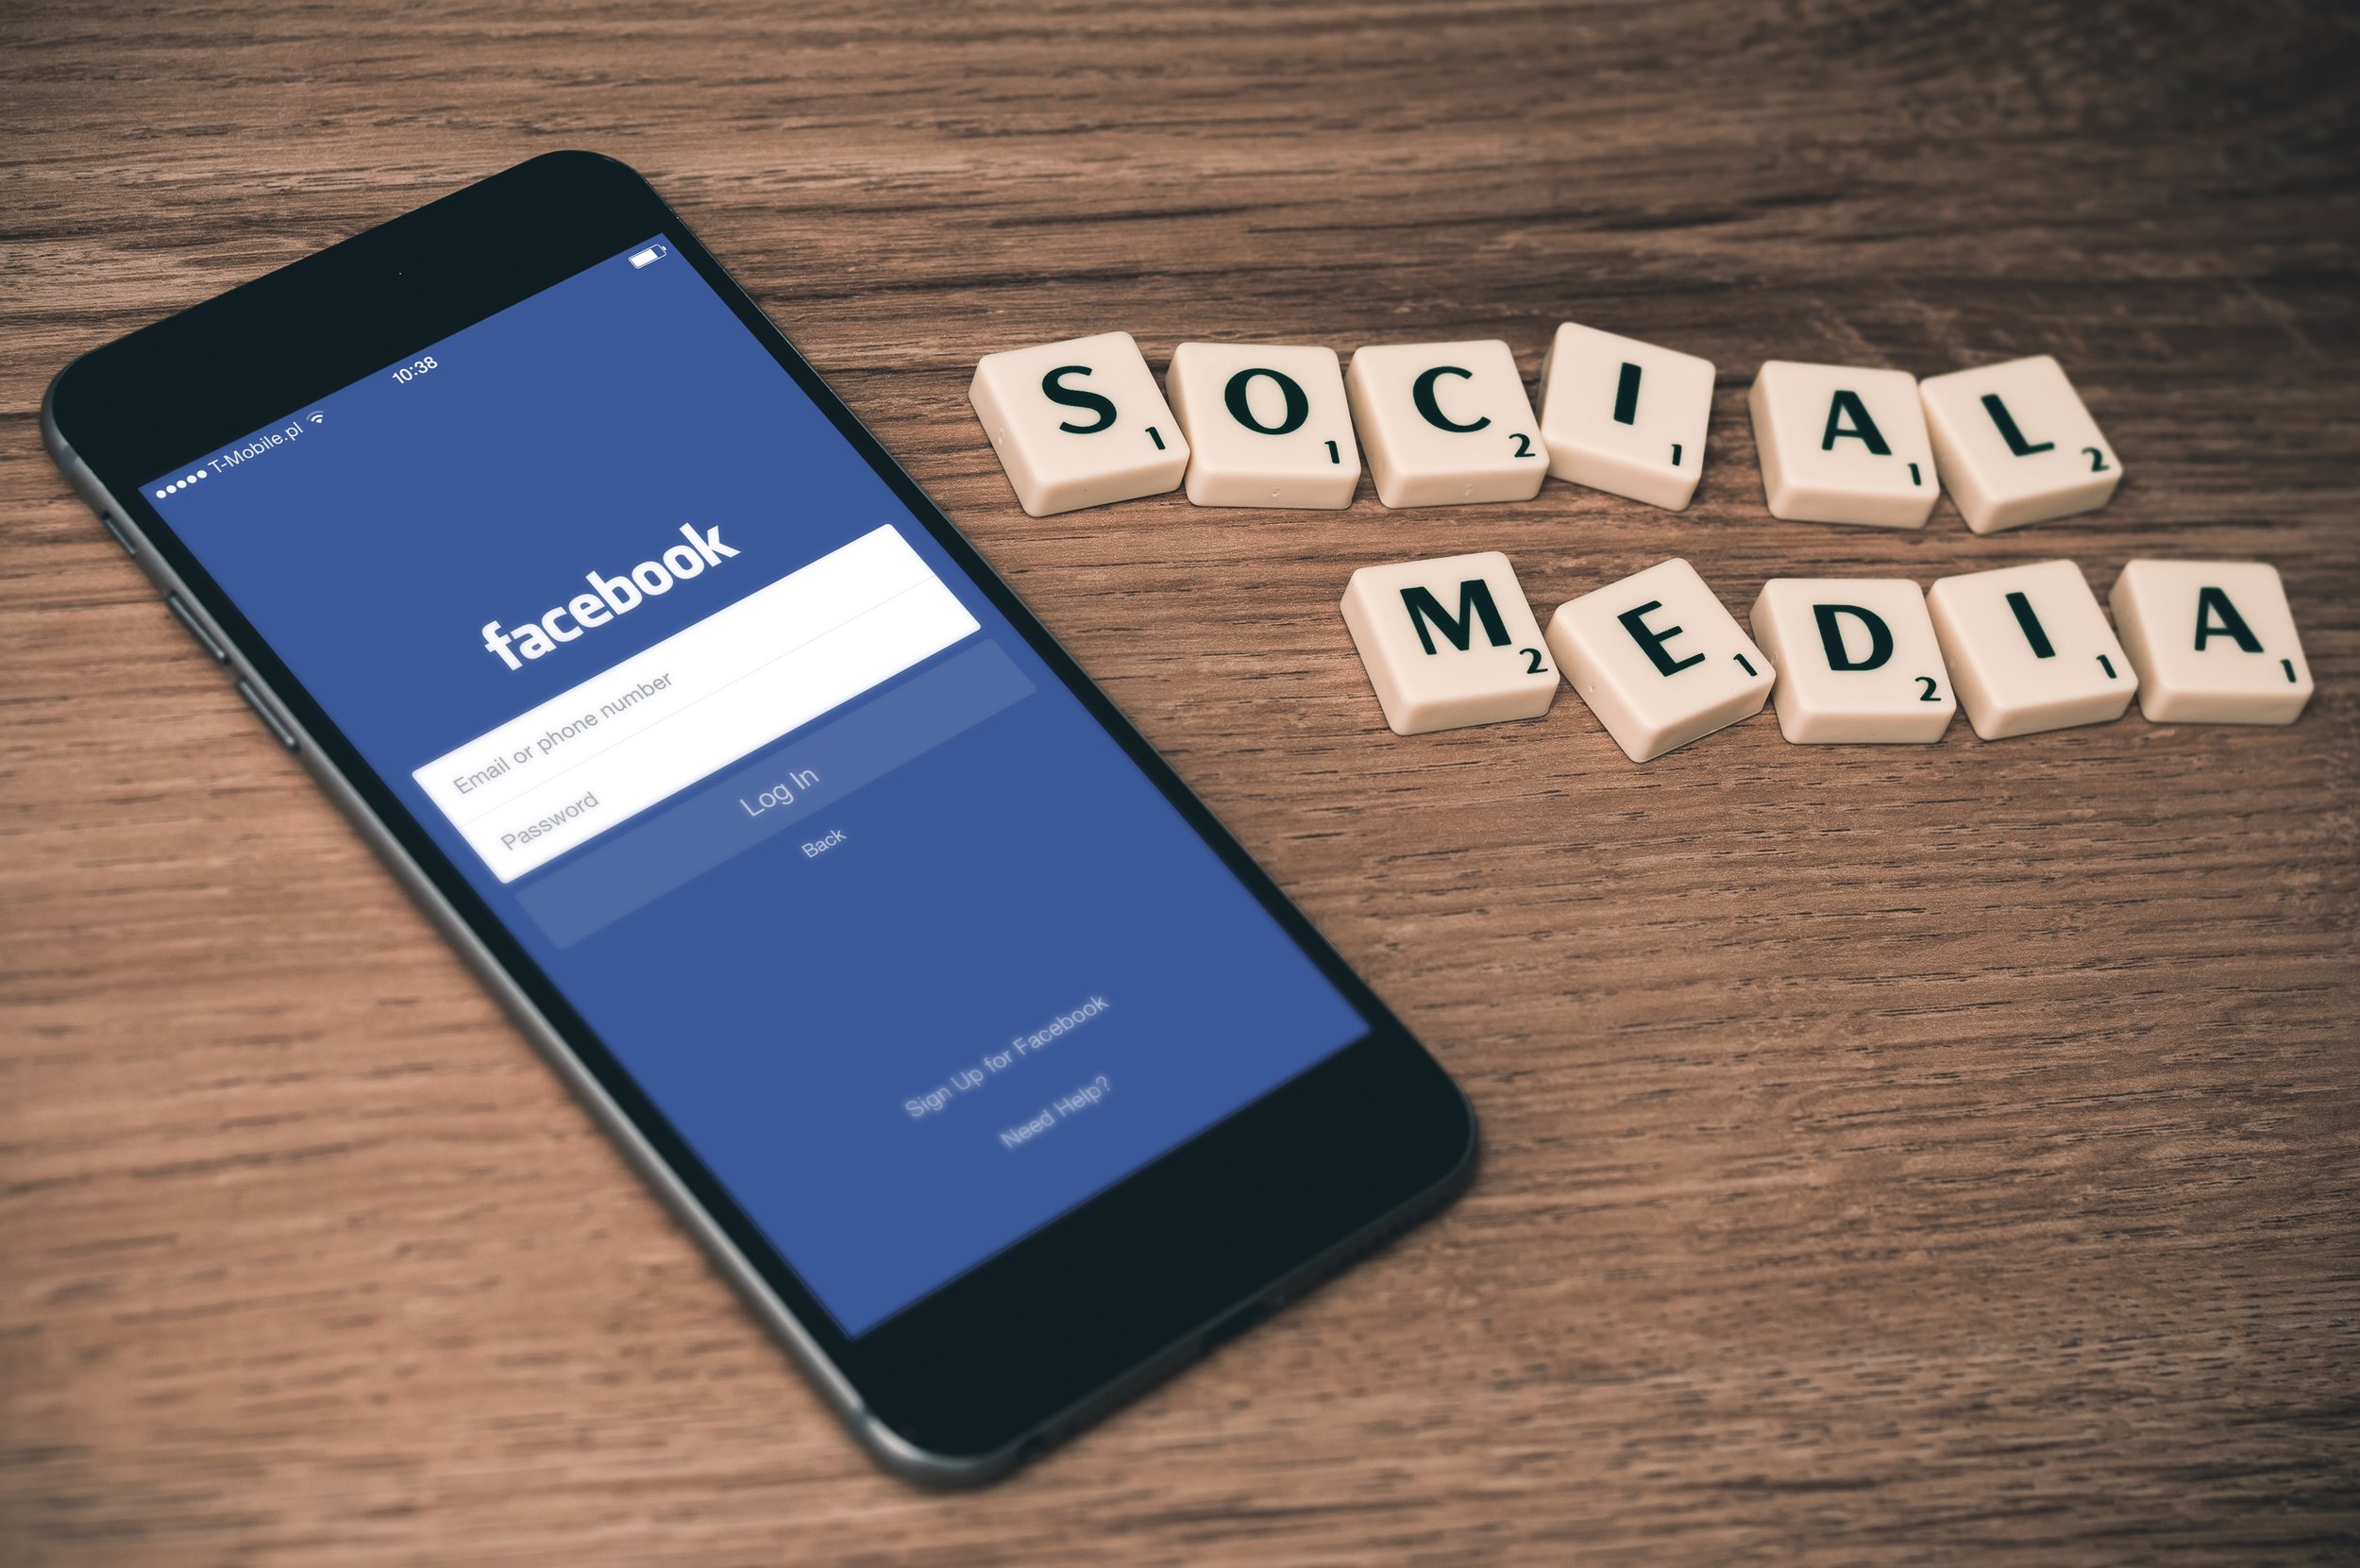 Social Networking - Video is important for all platforms from Facebook to Instagram. Our videos will powerfully represent what you care about and why